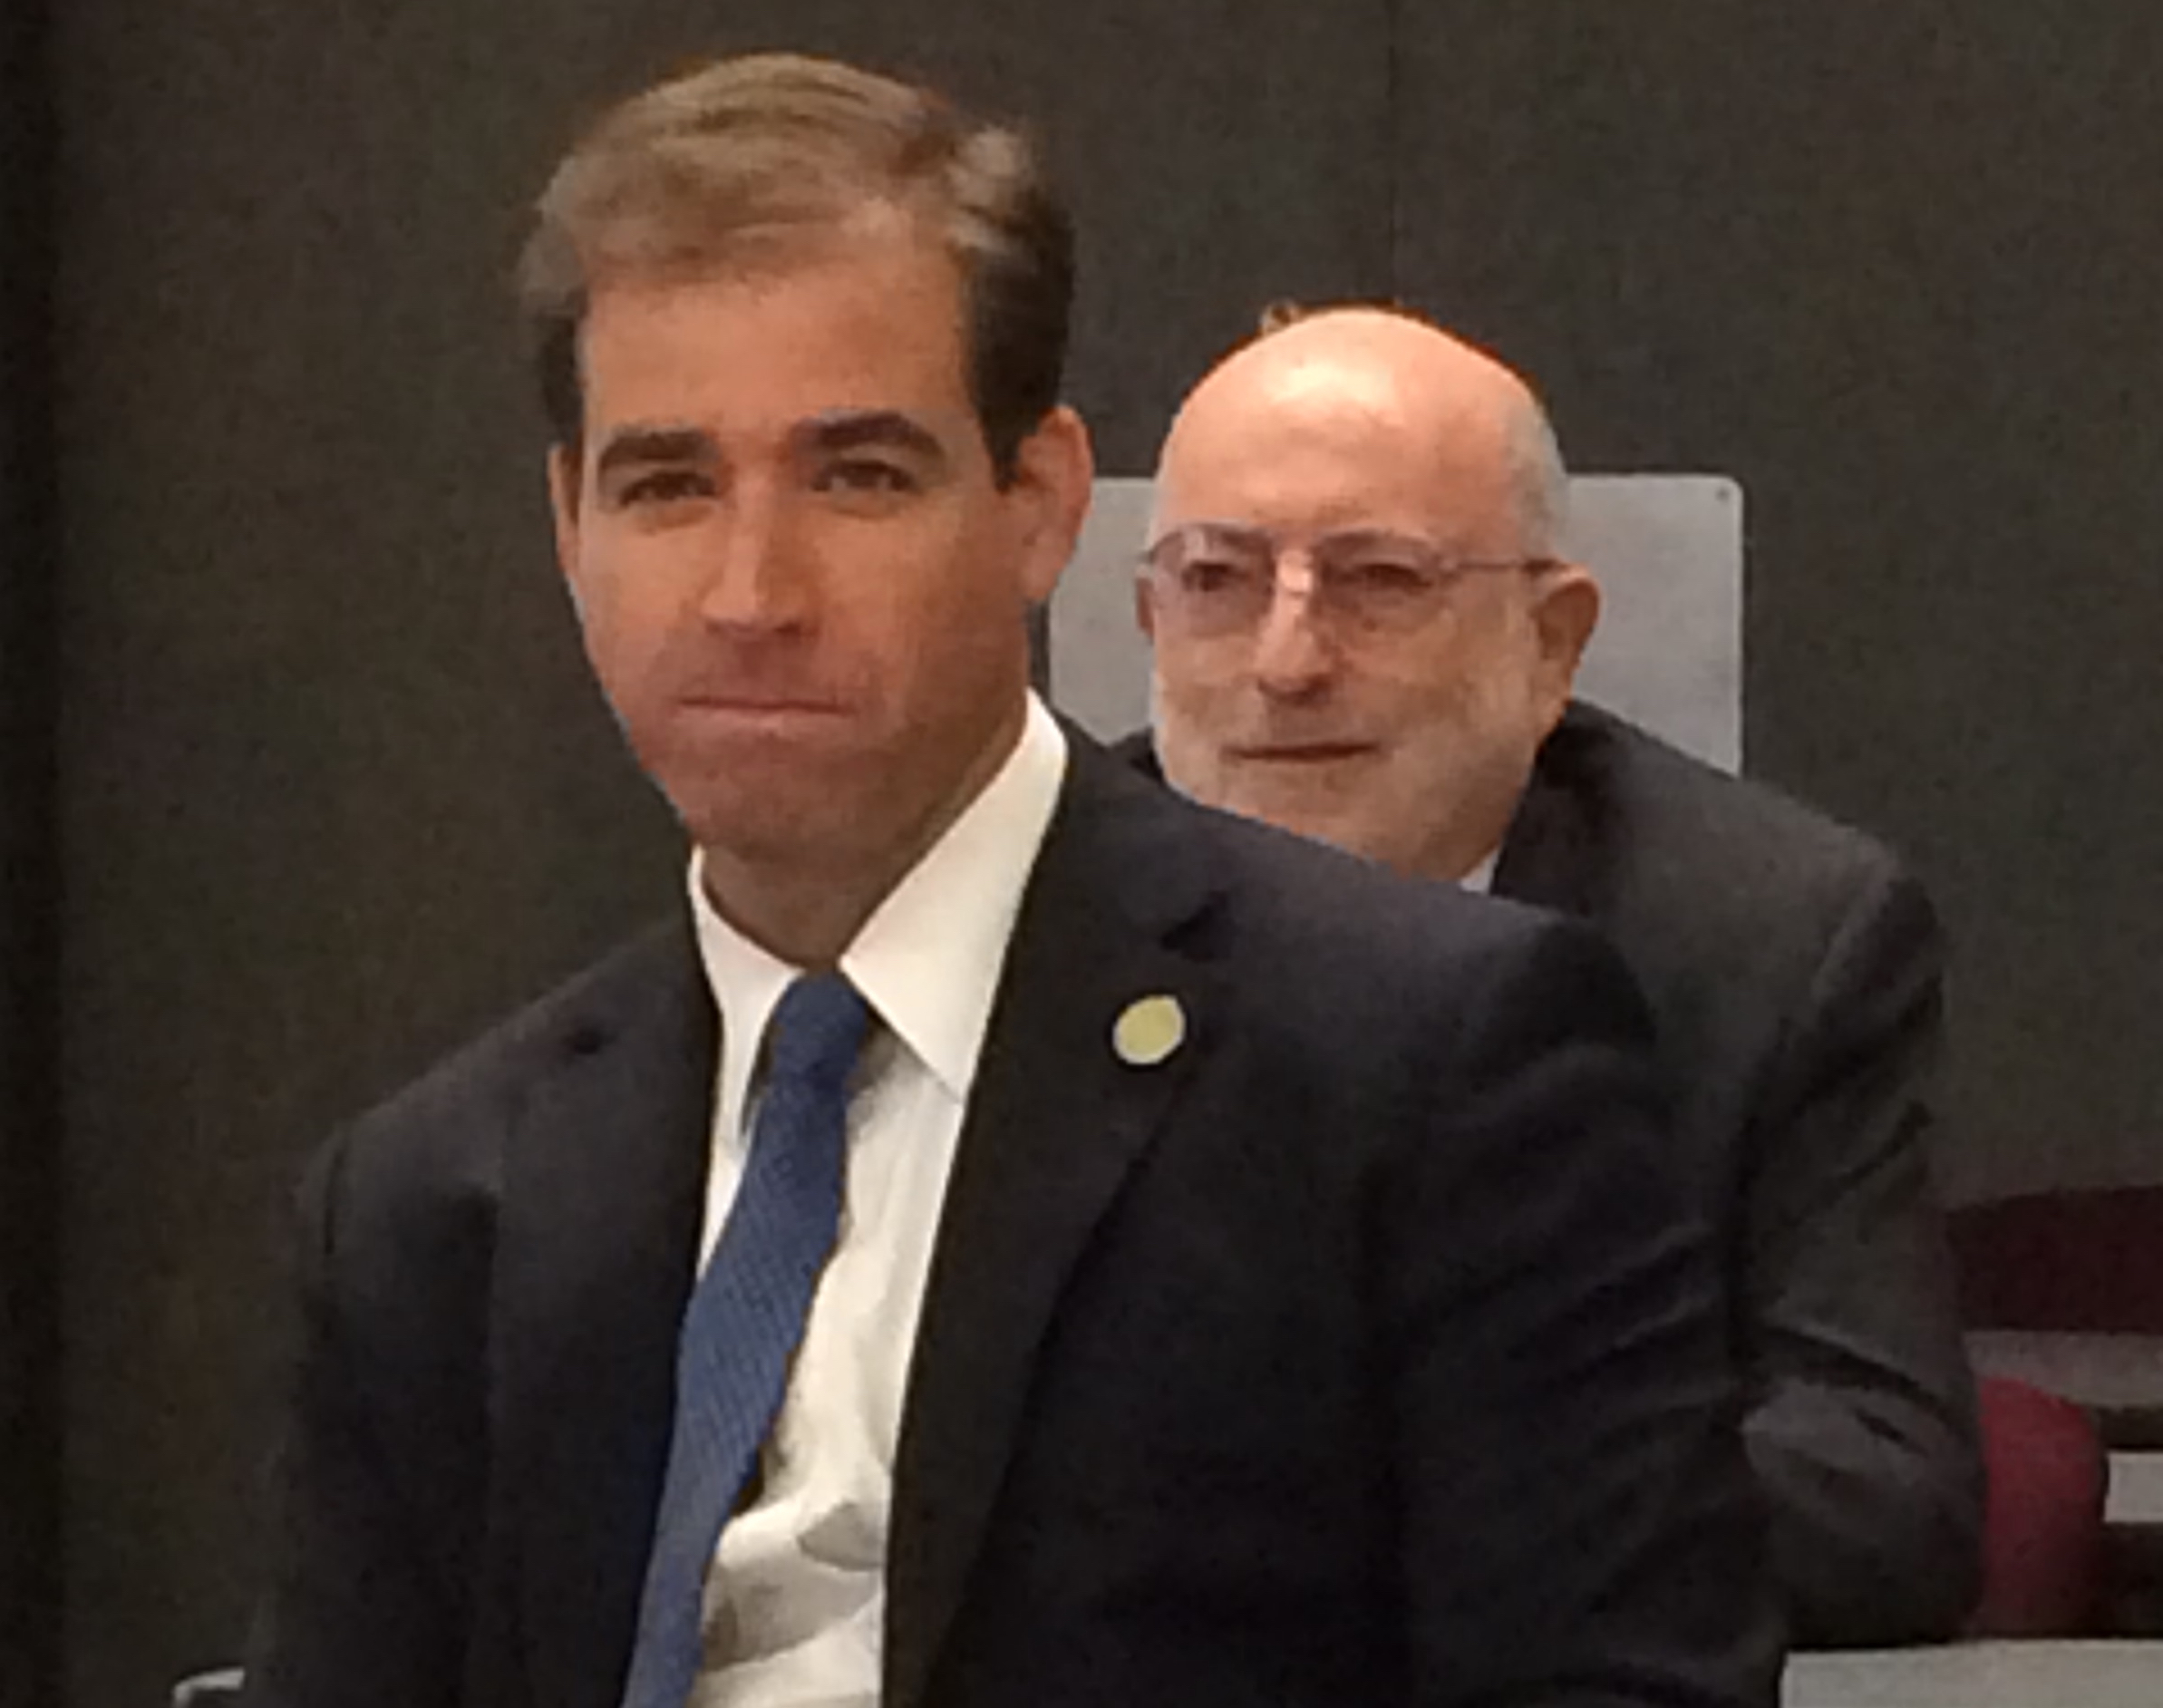 Hartford's Bronin seeks ally in push for municipal finance reform